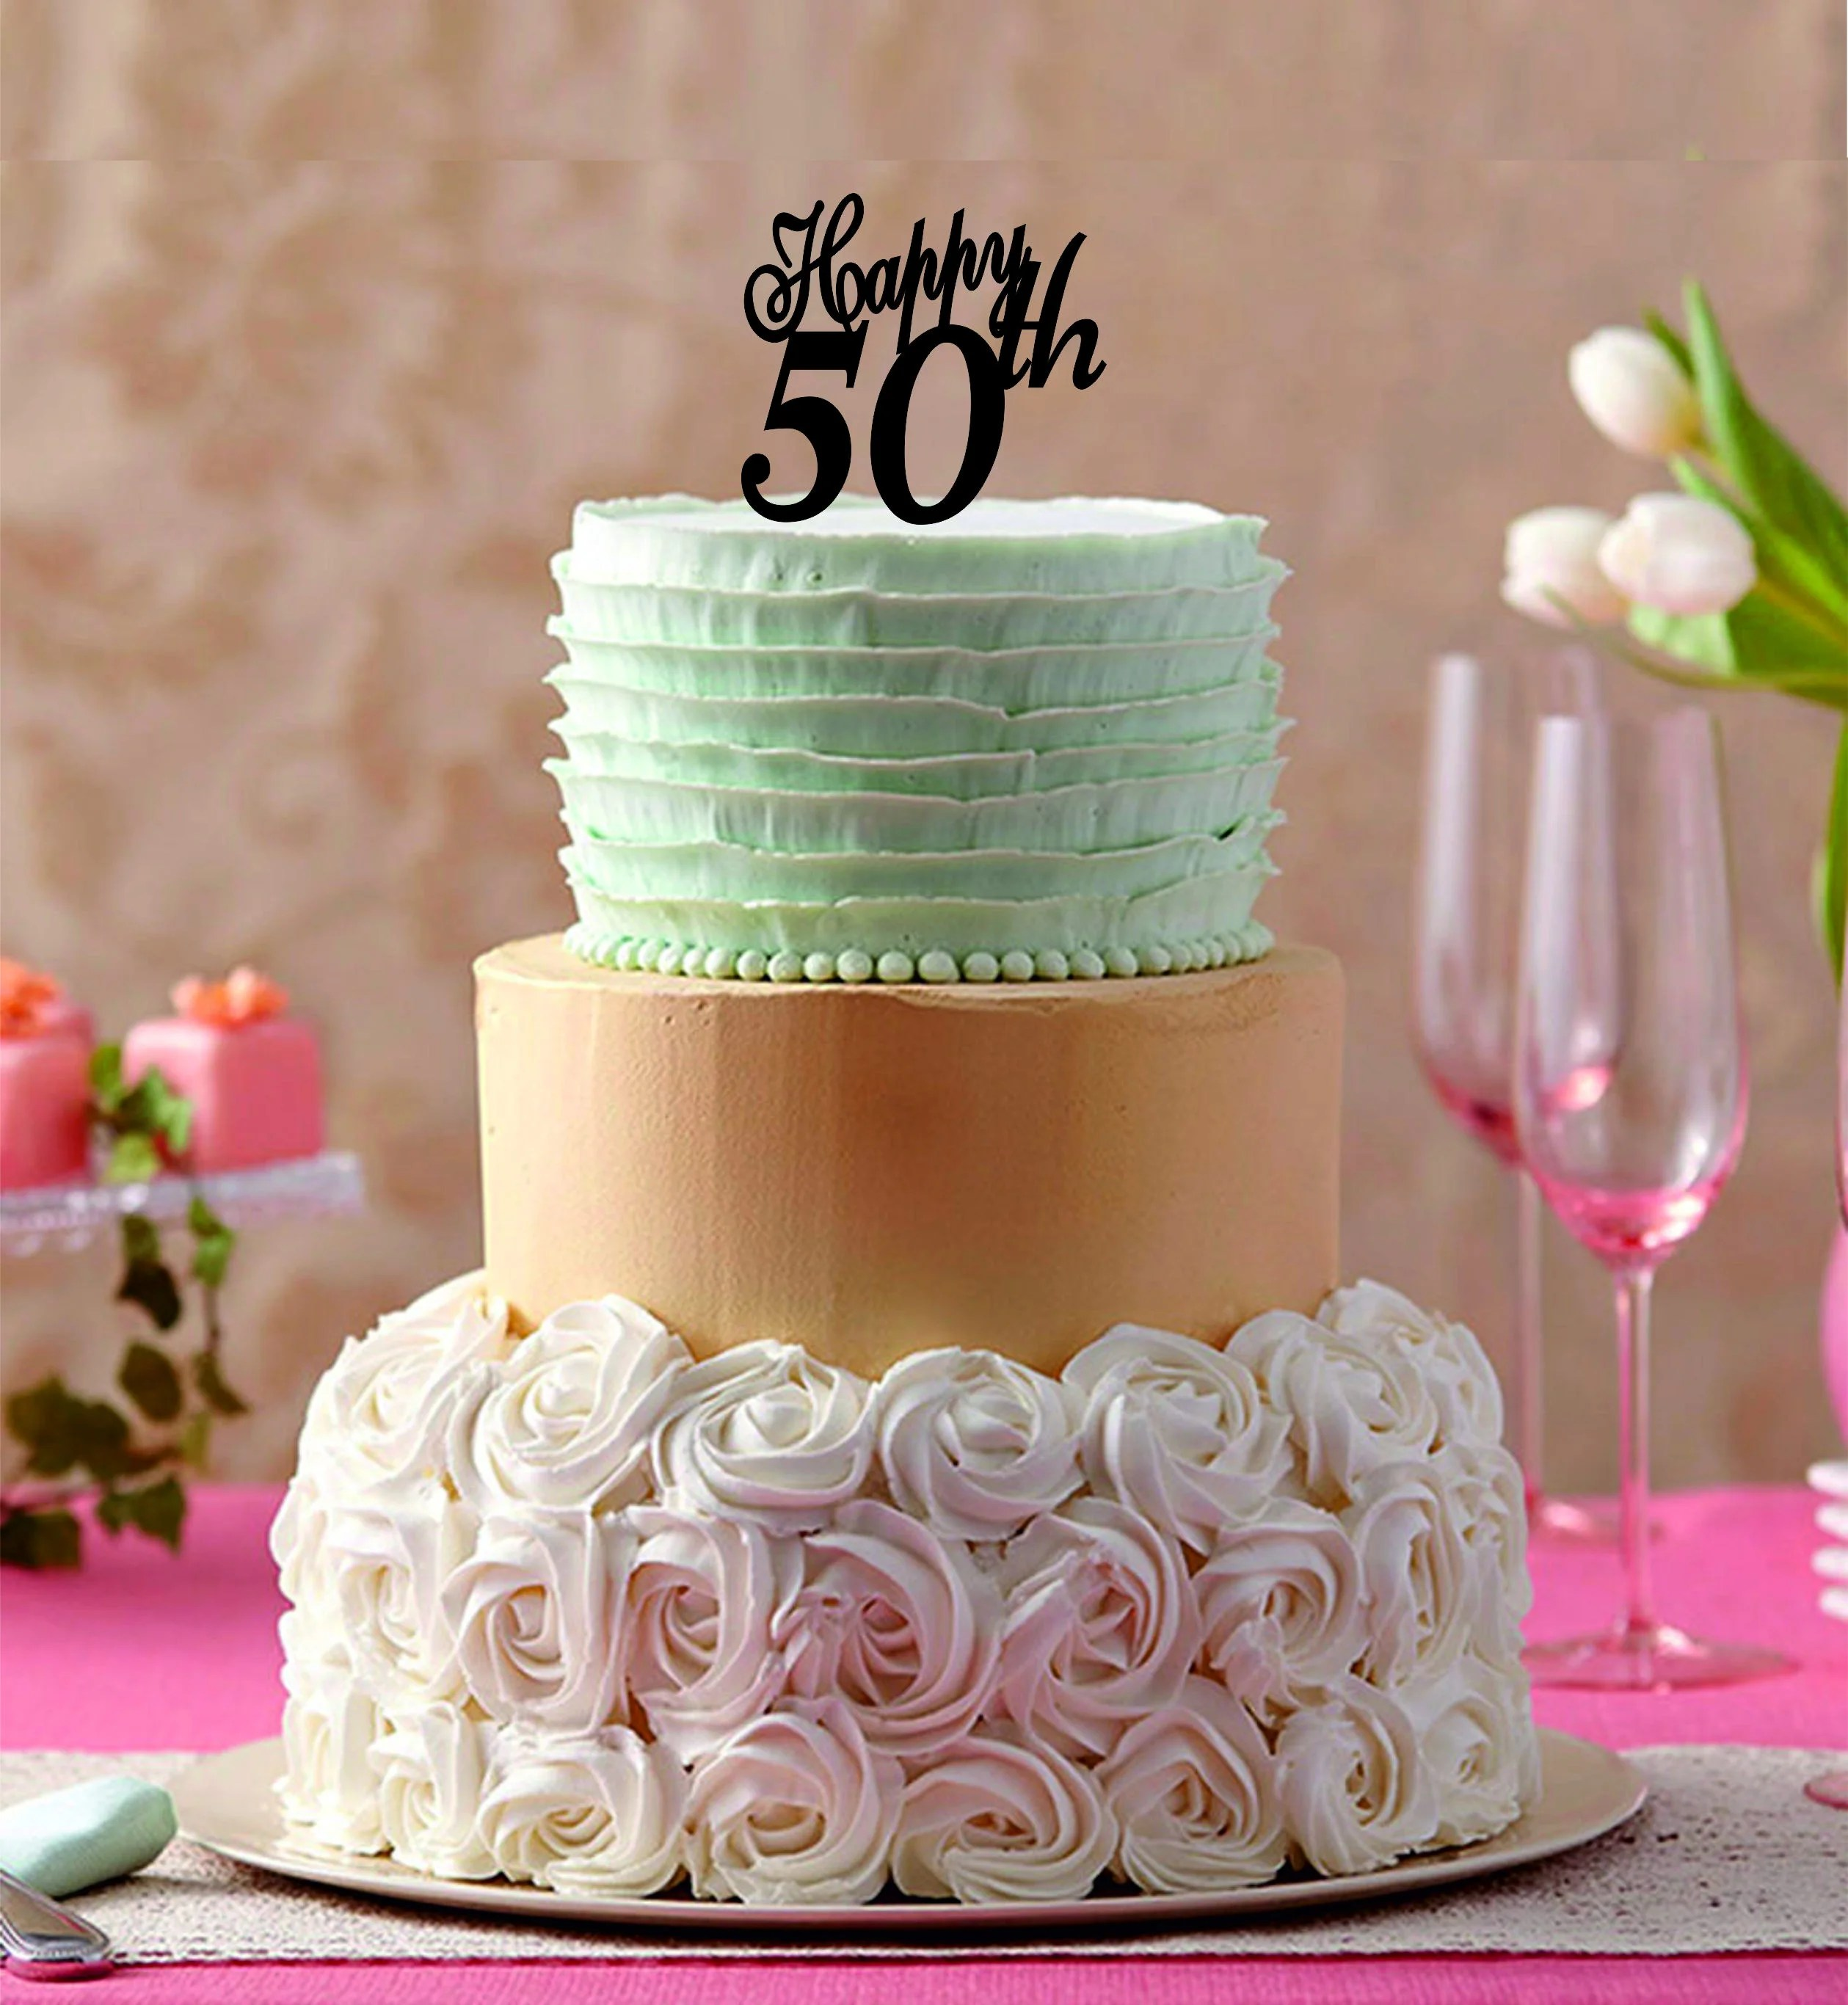 50 Years Old Happy Birthday Cake